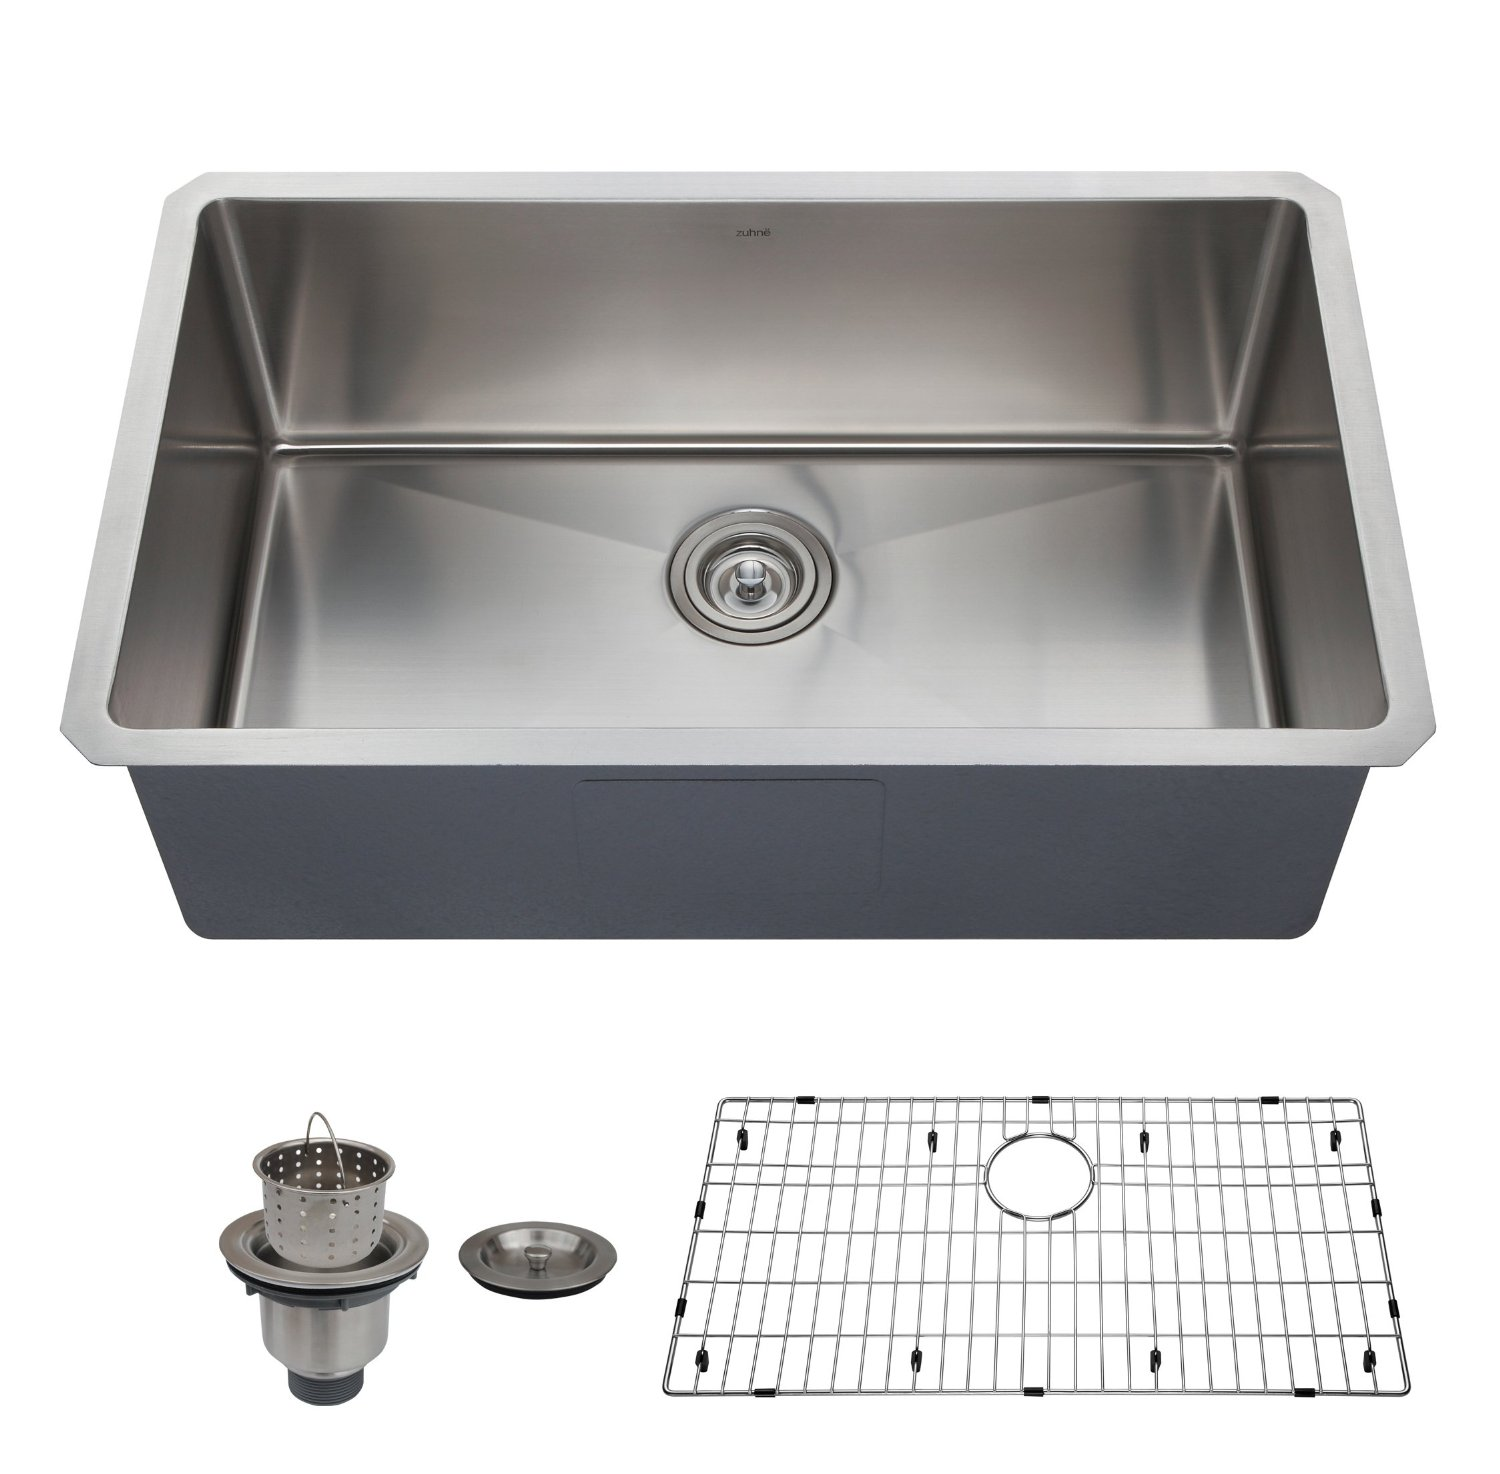 Best Single Bowl Kitchen Sink Reviews Buying Guide  Bkfh. Kitchen Tiles White. Olive Green Kitchen Wall Tiles. How To Tile A Kitchen Countertop. French Kitchen Islands. French Kitchen Lighting. Kitchen Tiling Cost. Kitchen Island Design With Seating. Kitchen Portable Island